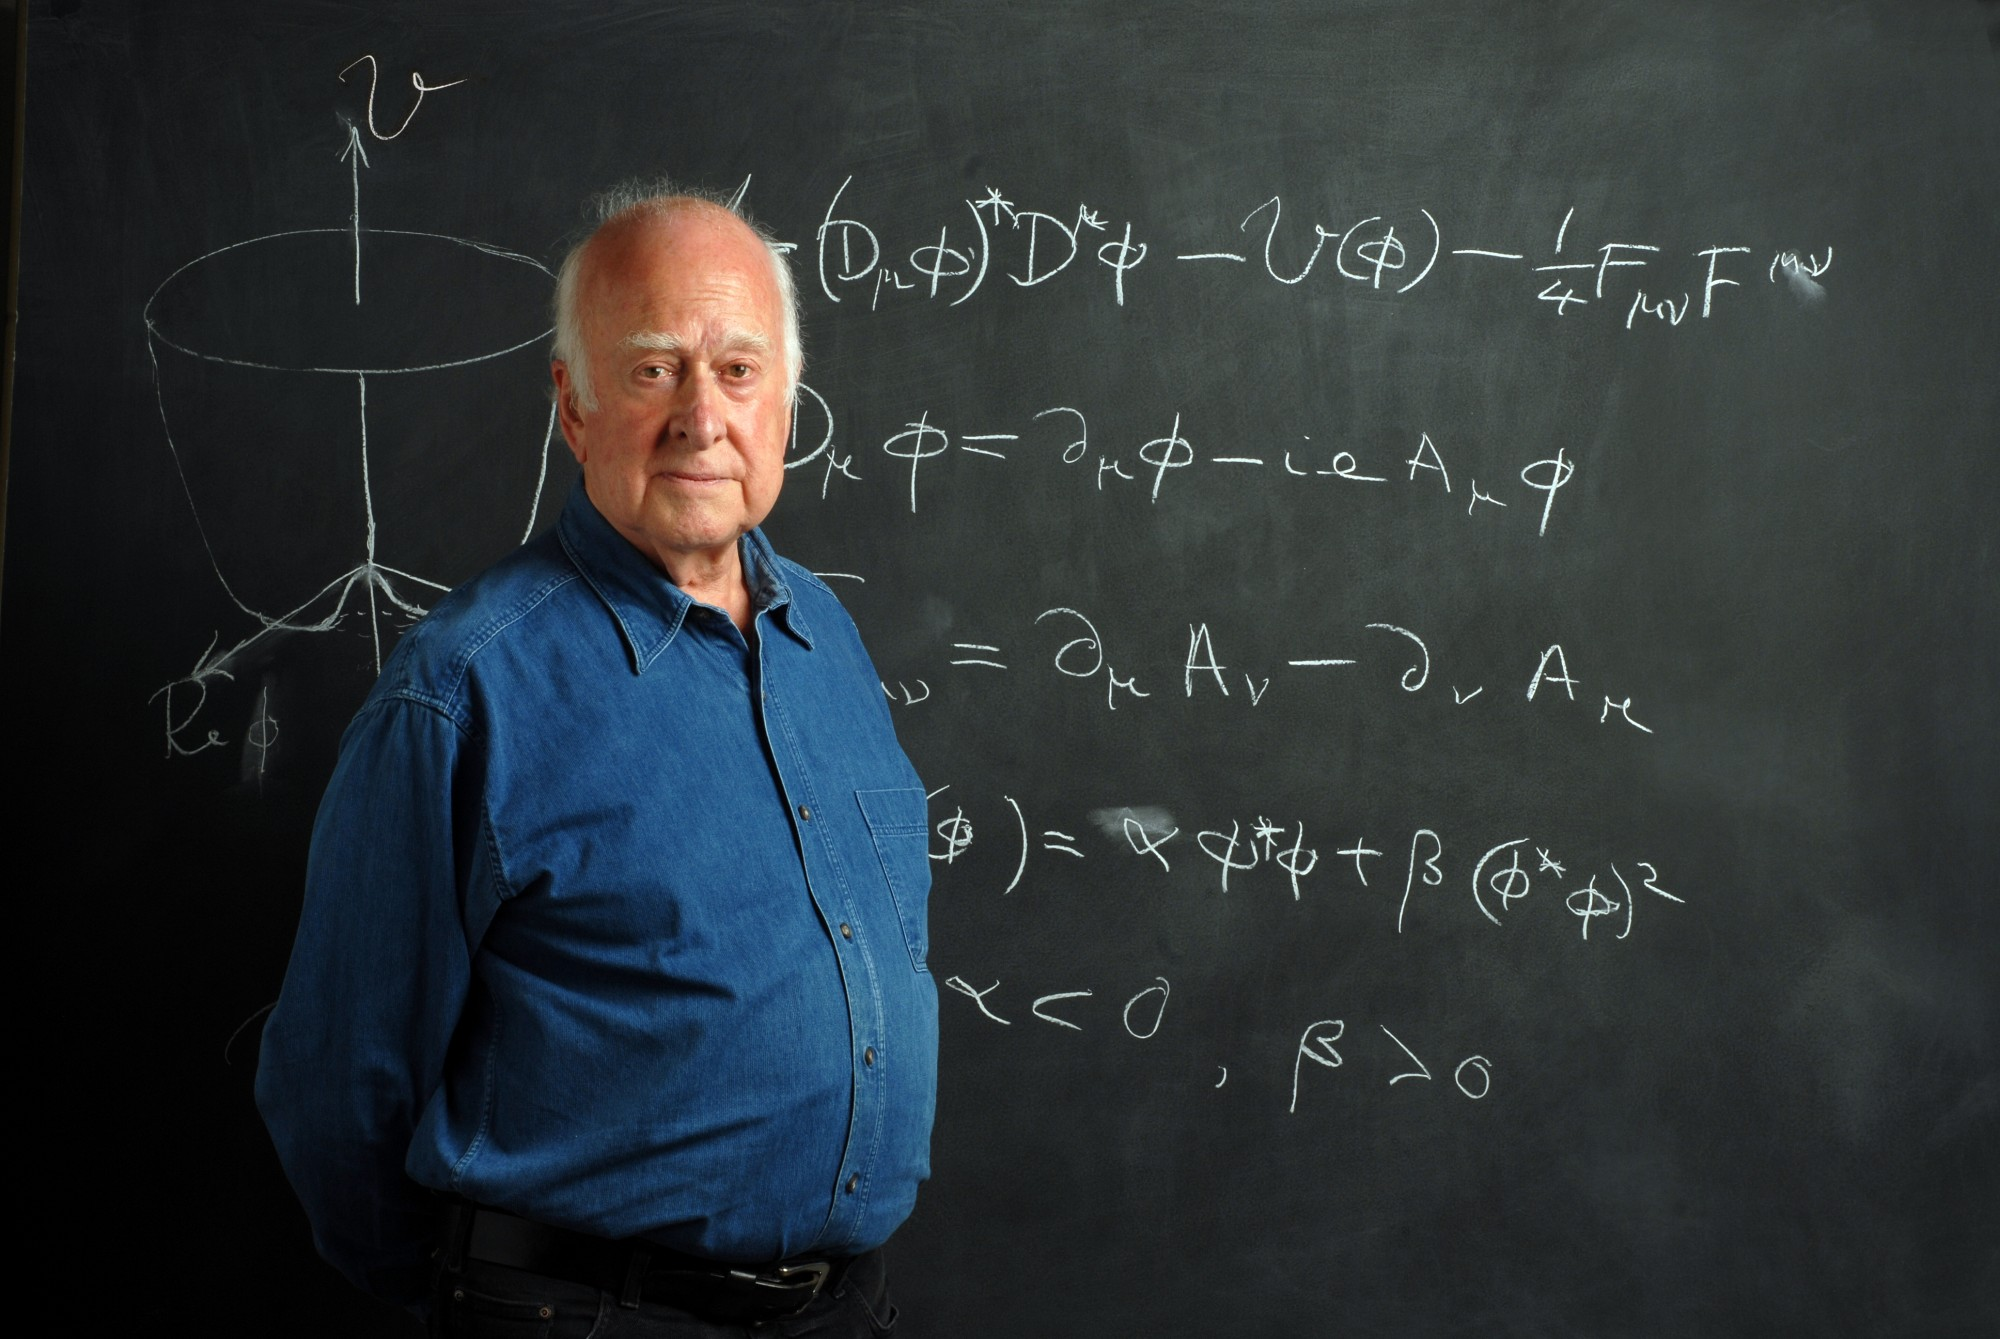 Photographic portrait of Peter Higgs, in front of blackboard, taken by Peter Tuffy. 17 June 2009.